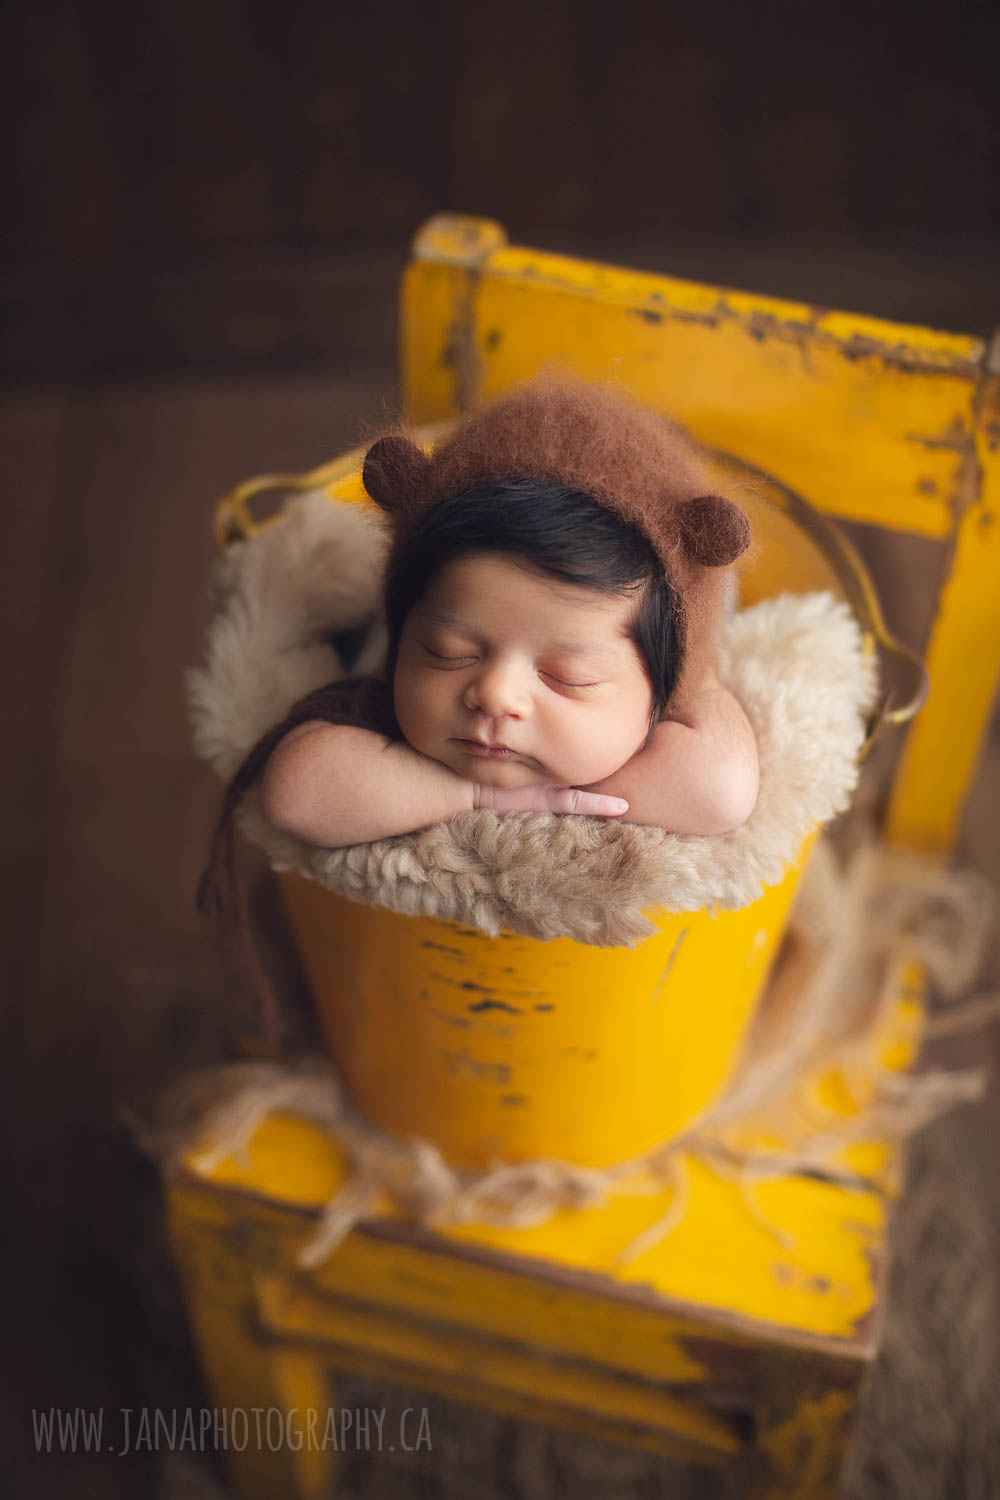 newborn baby boy - yellow bucket - bear hat